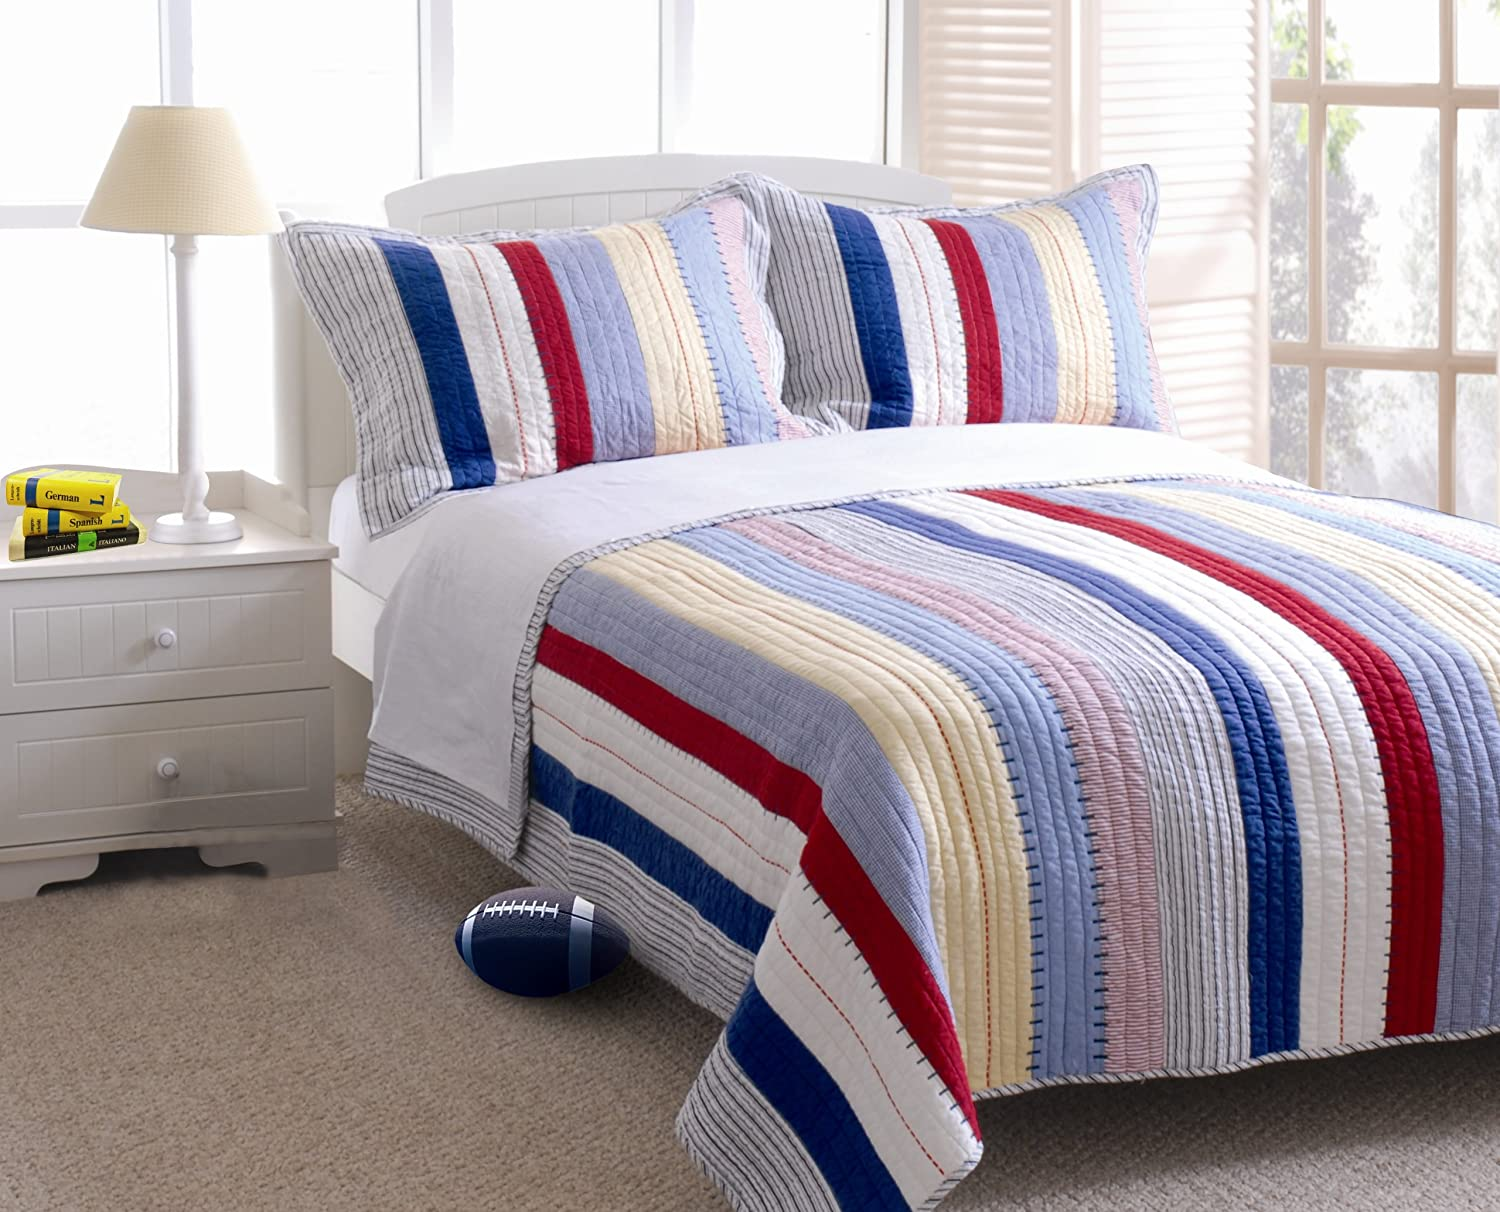 Red white and blue bedroom decorating ideas - Red white and blue sheets ...